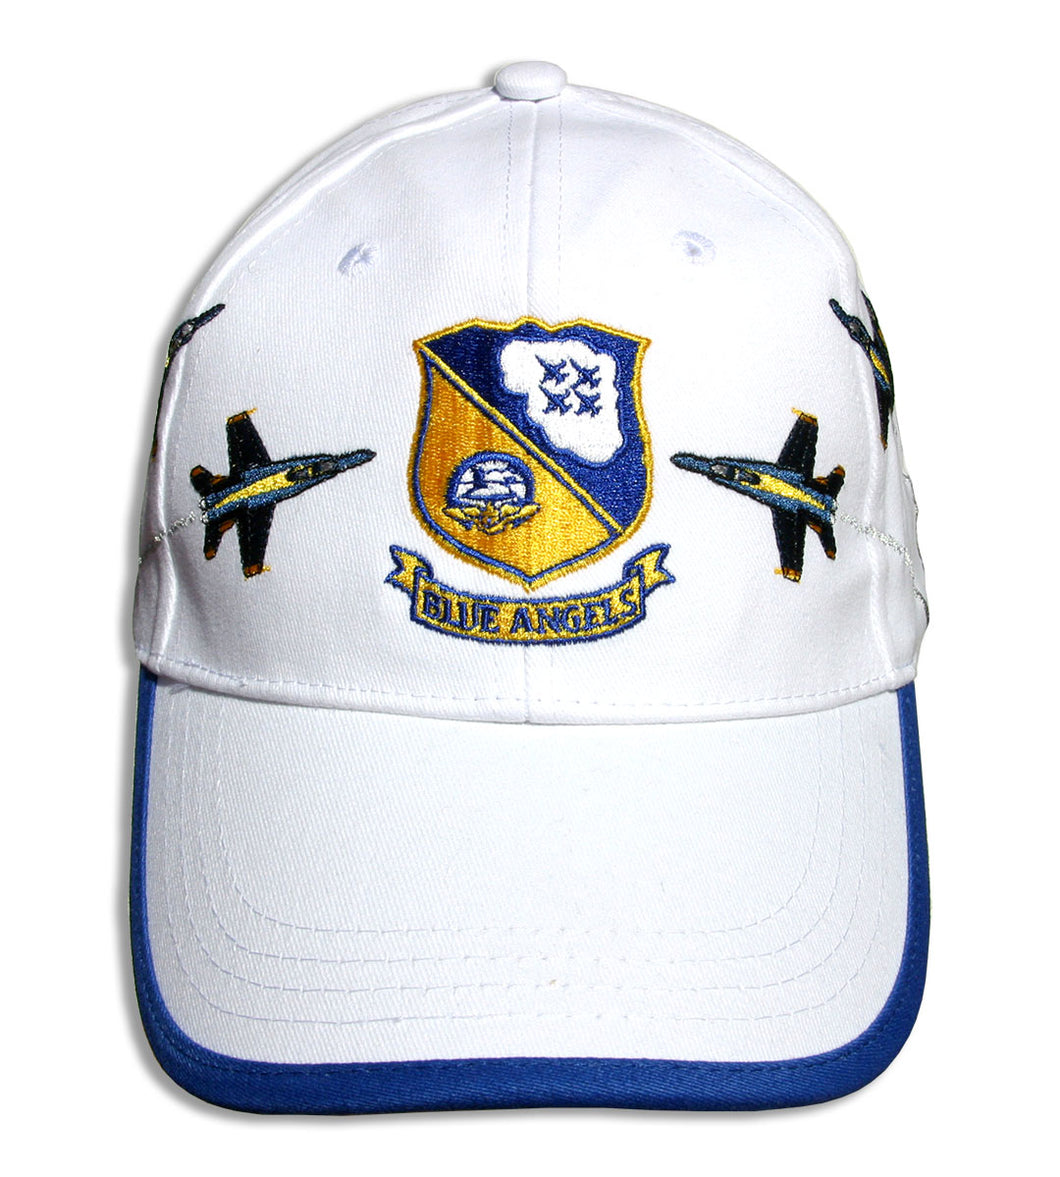 Blue Angels White Royal Crest Breakout Embroidered Cap